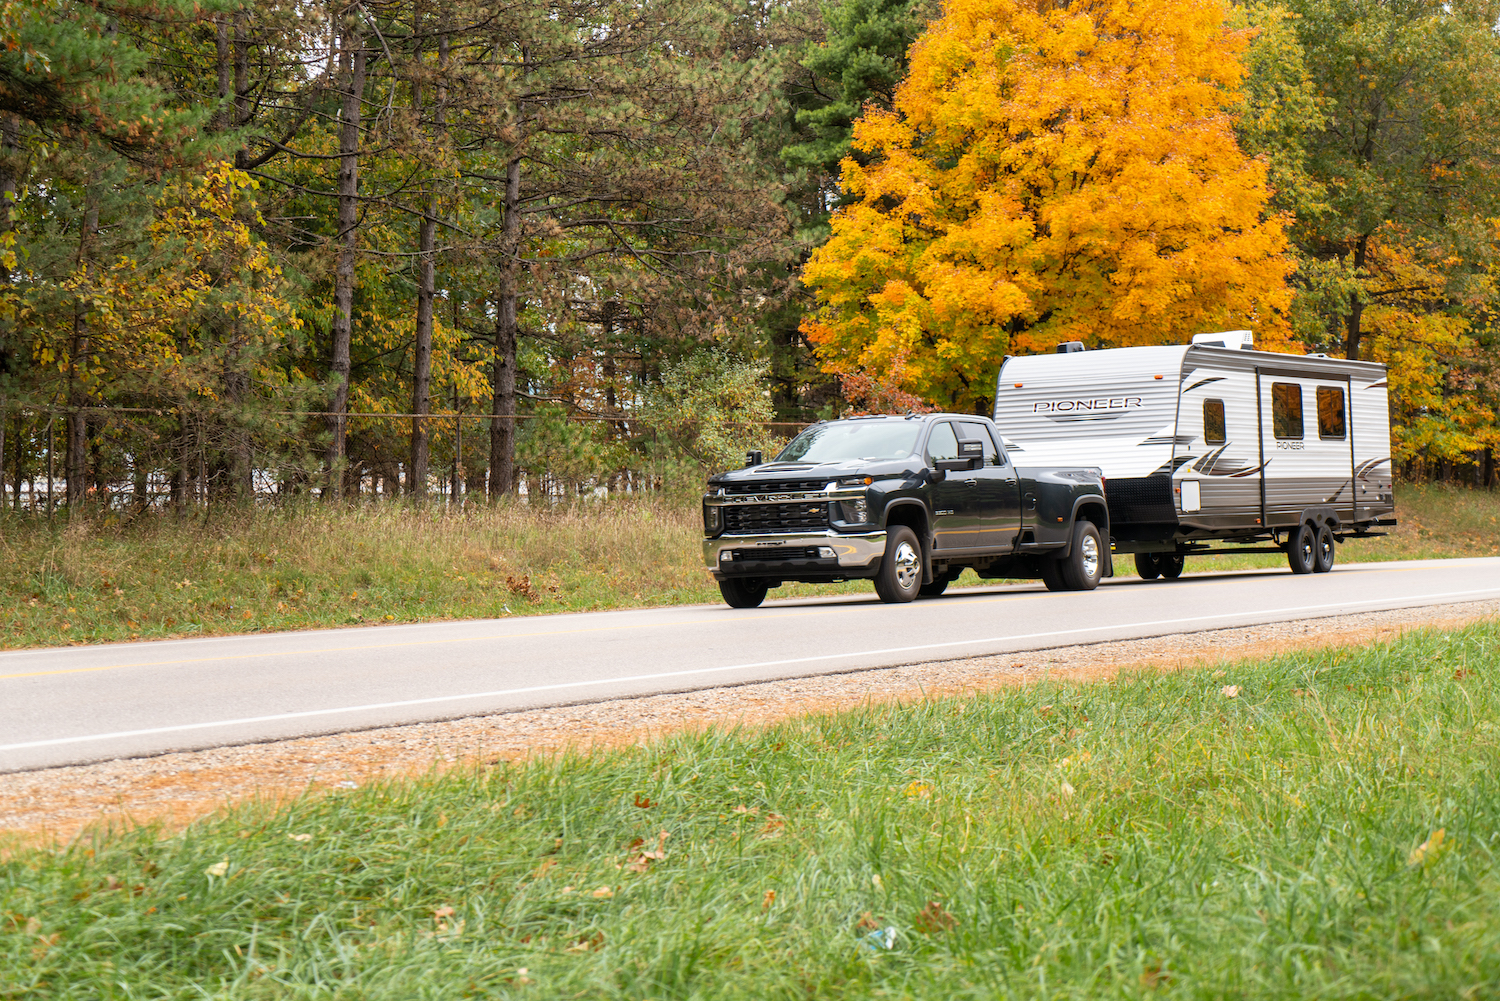 Chevy truck towing a travel trailer